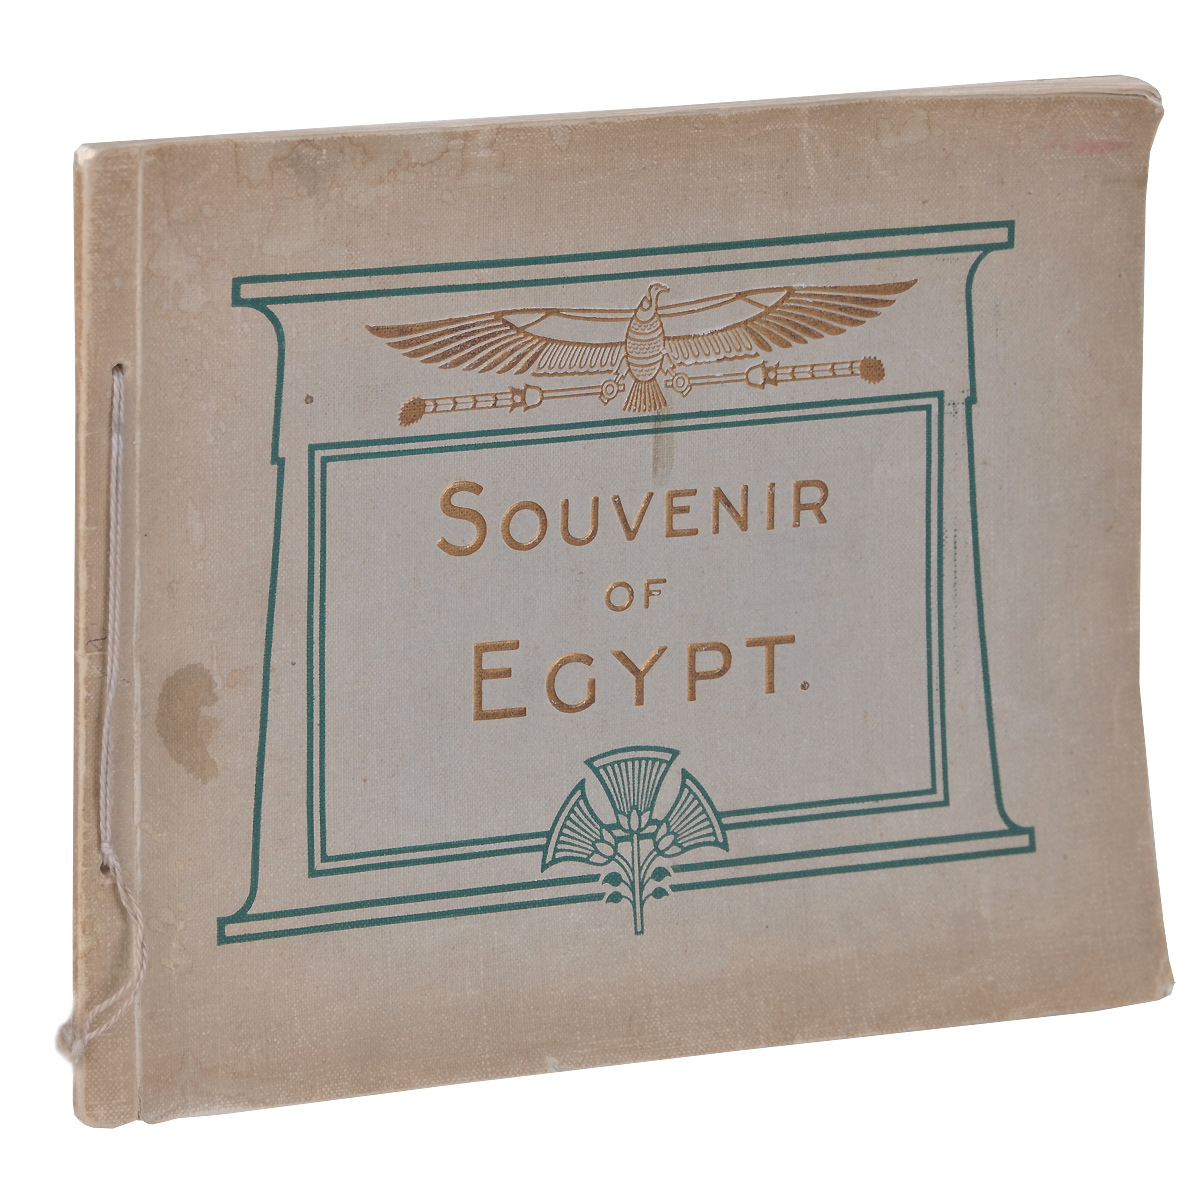 Souvenir of EgyptDEN3093Лондон, 1920 год. Tillotson Press. Издательский переплет. Сохранена оригинальная обложка. Сохранность хорошая.Album Souvenir of Egypt contains 70 illustrations of Lower and Upper Egypt. Including all the principal views of places of interest on the Nile.Издание не подлежит вывозу за пределы Российской Федерации.